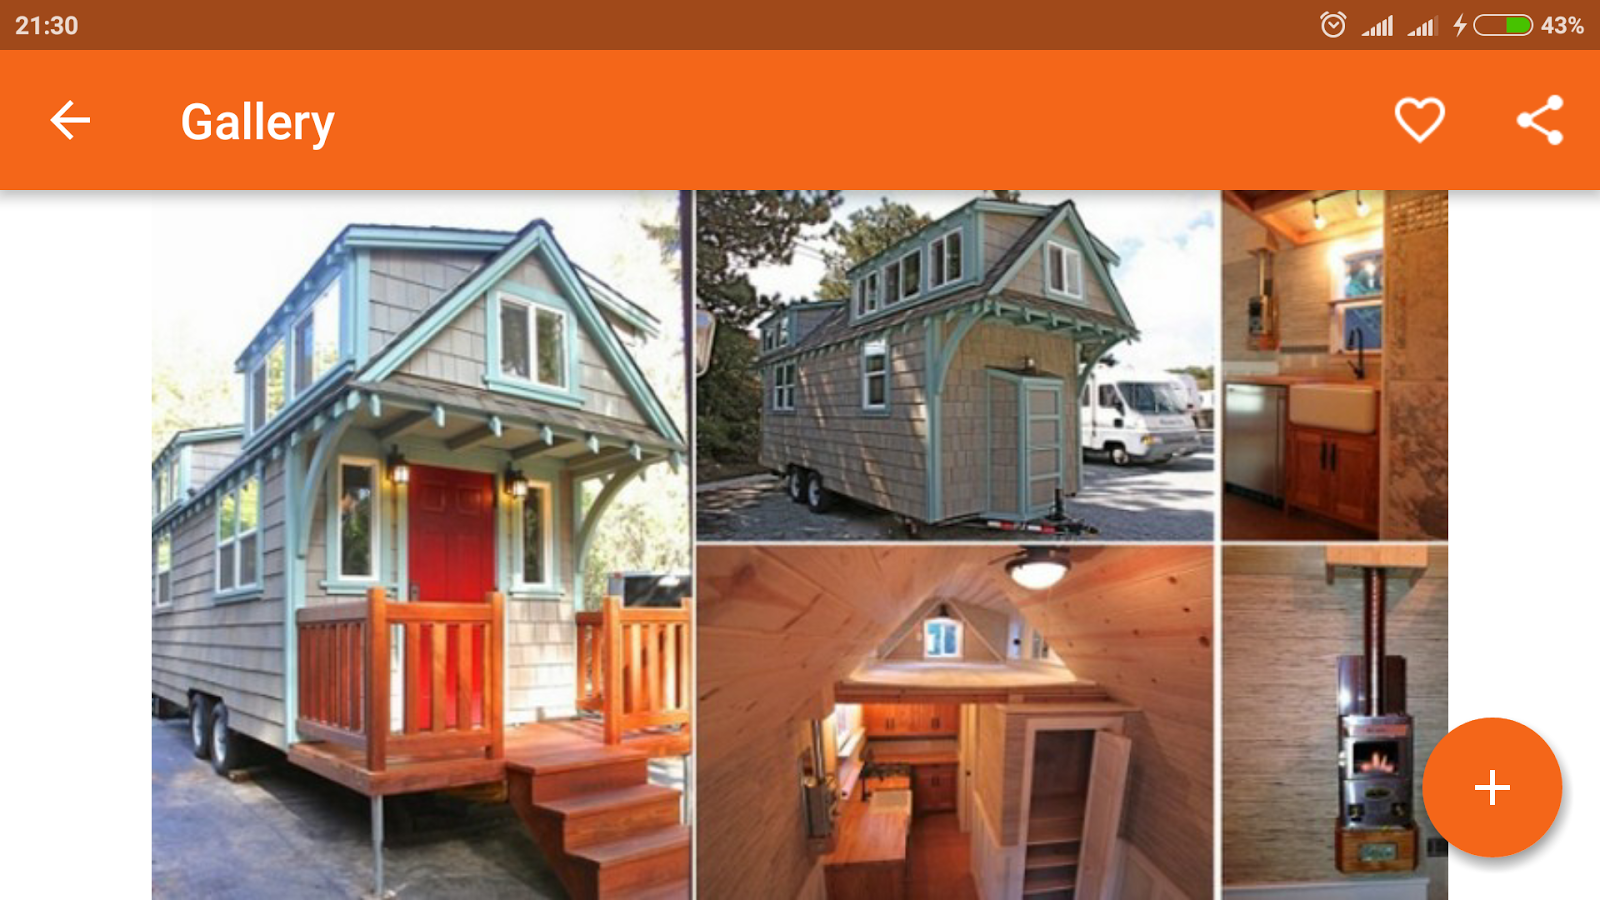 tiny home designs plans. Tiny House Design Plans  screenshot Android Apps on Google Play